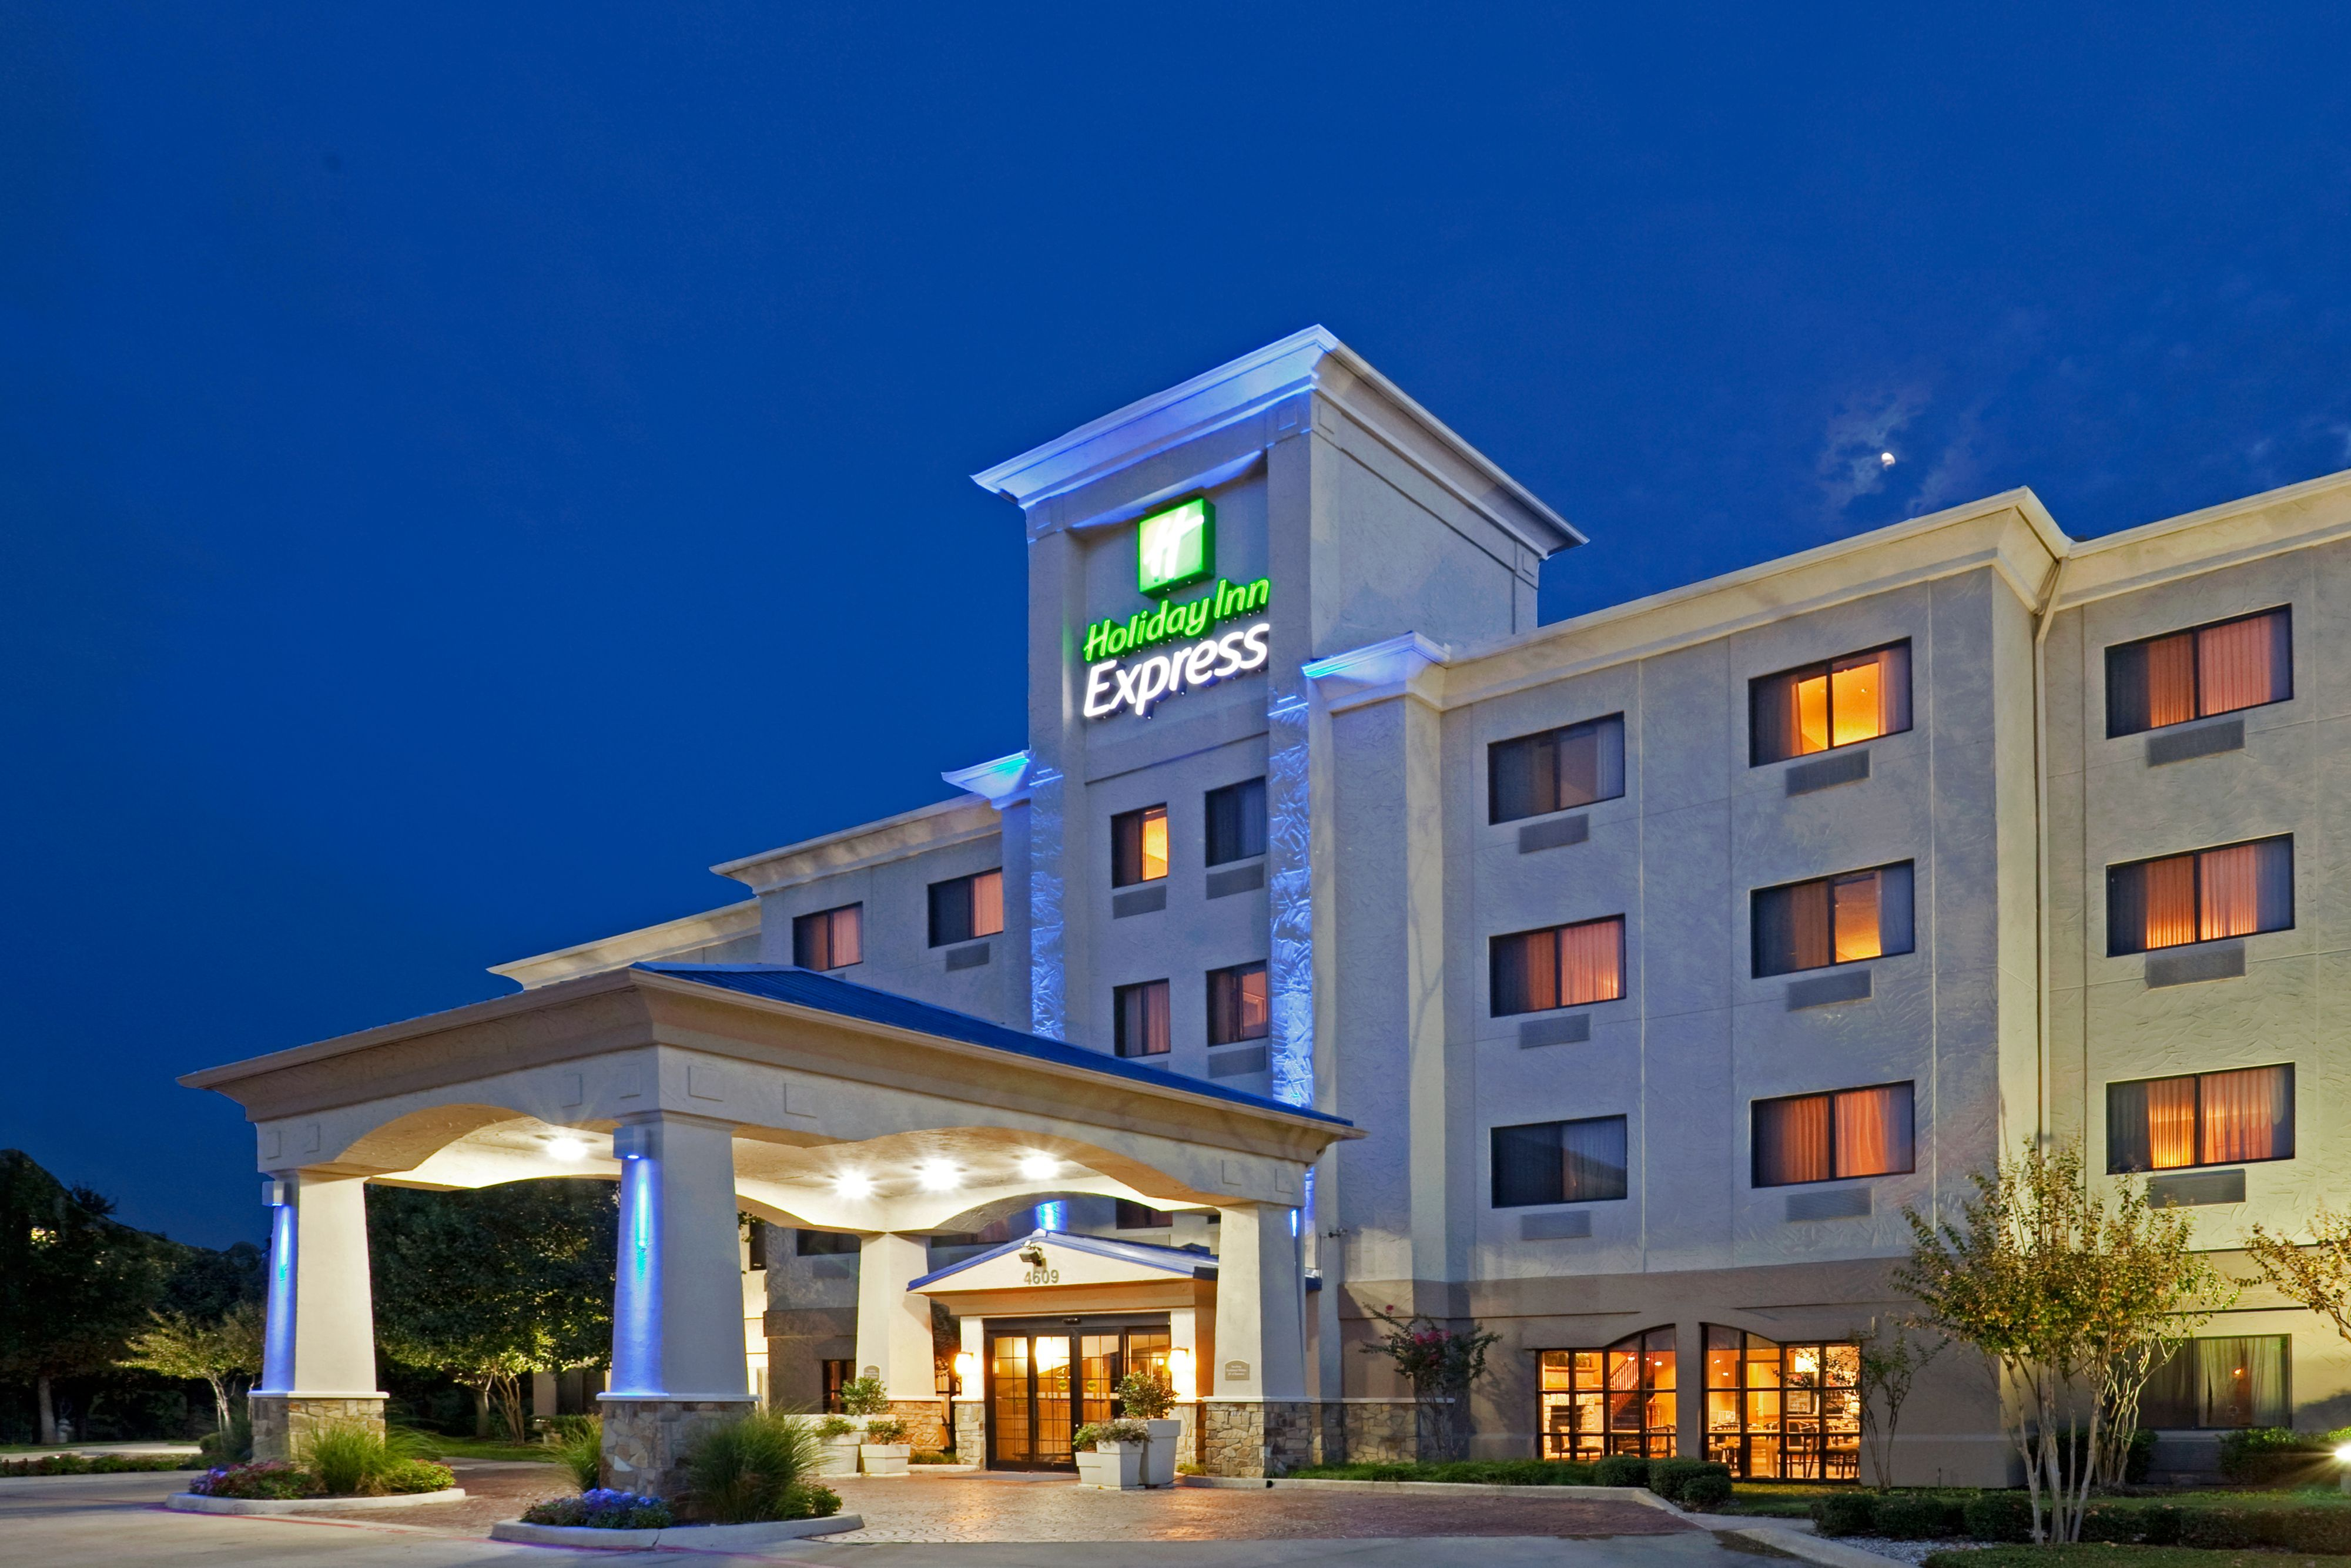 Holiday Inn Express Amp Suites Fort Worth I 35 Western